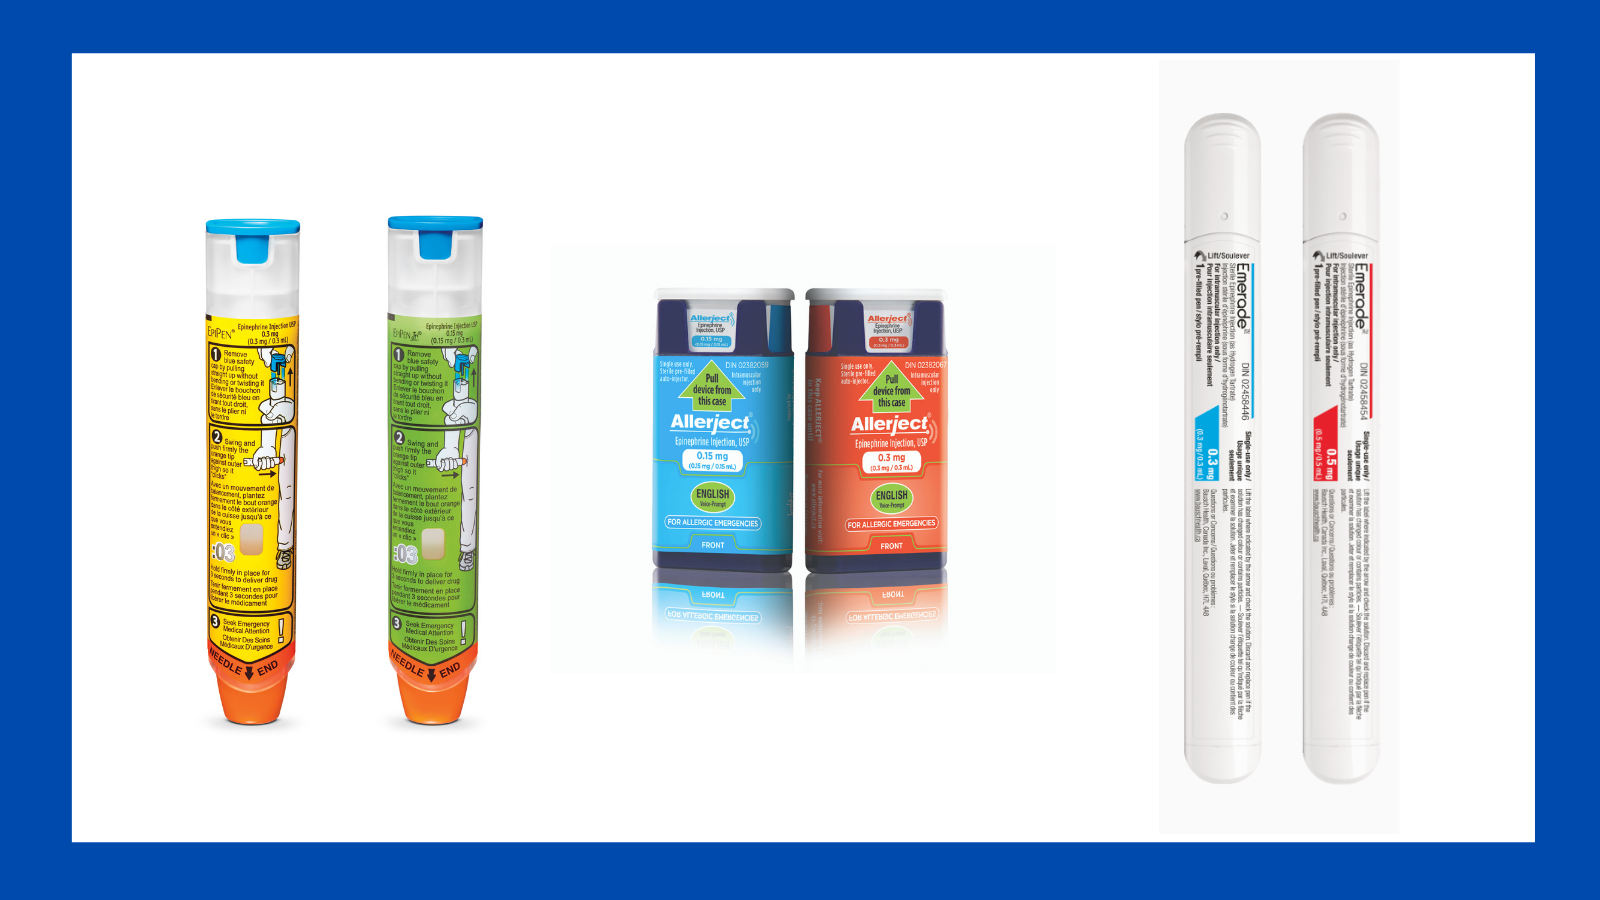 auto-injectors available in Canada - EpiPen, Allerject and Emerade